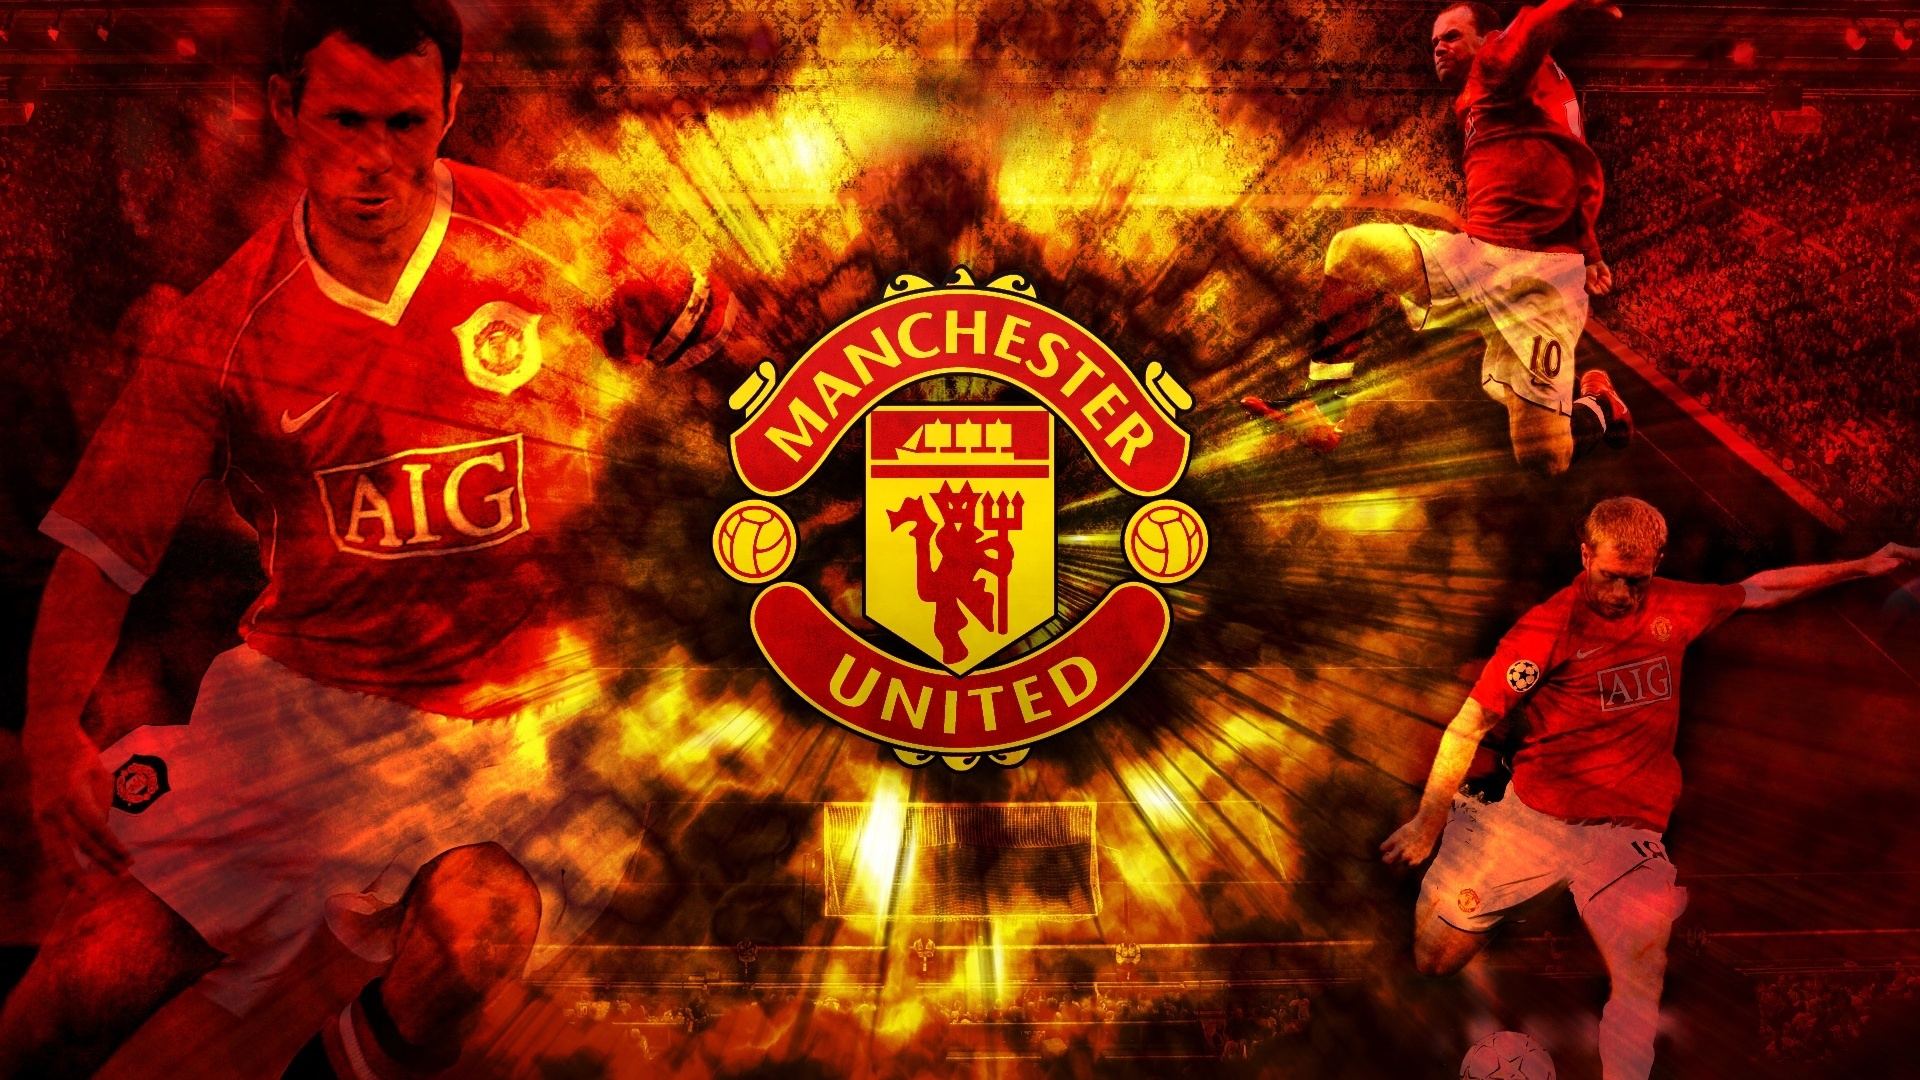 manchester united wallpapers 1 - photo #23